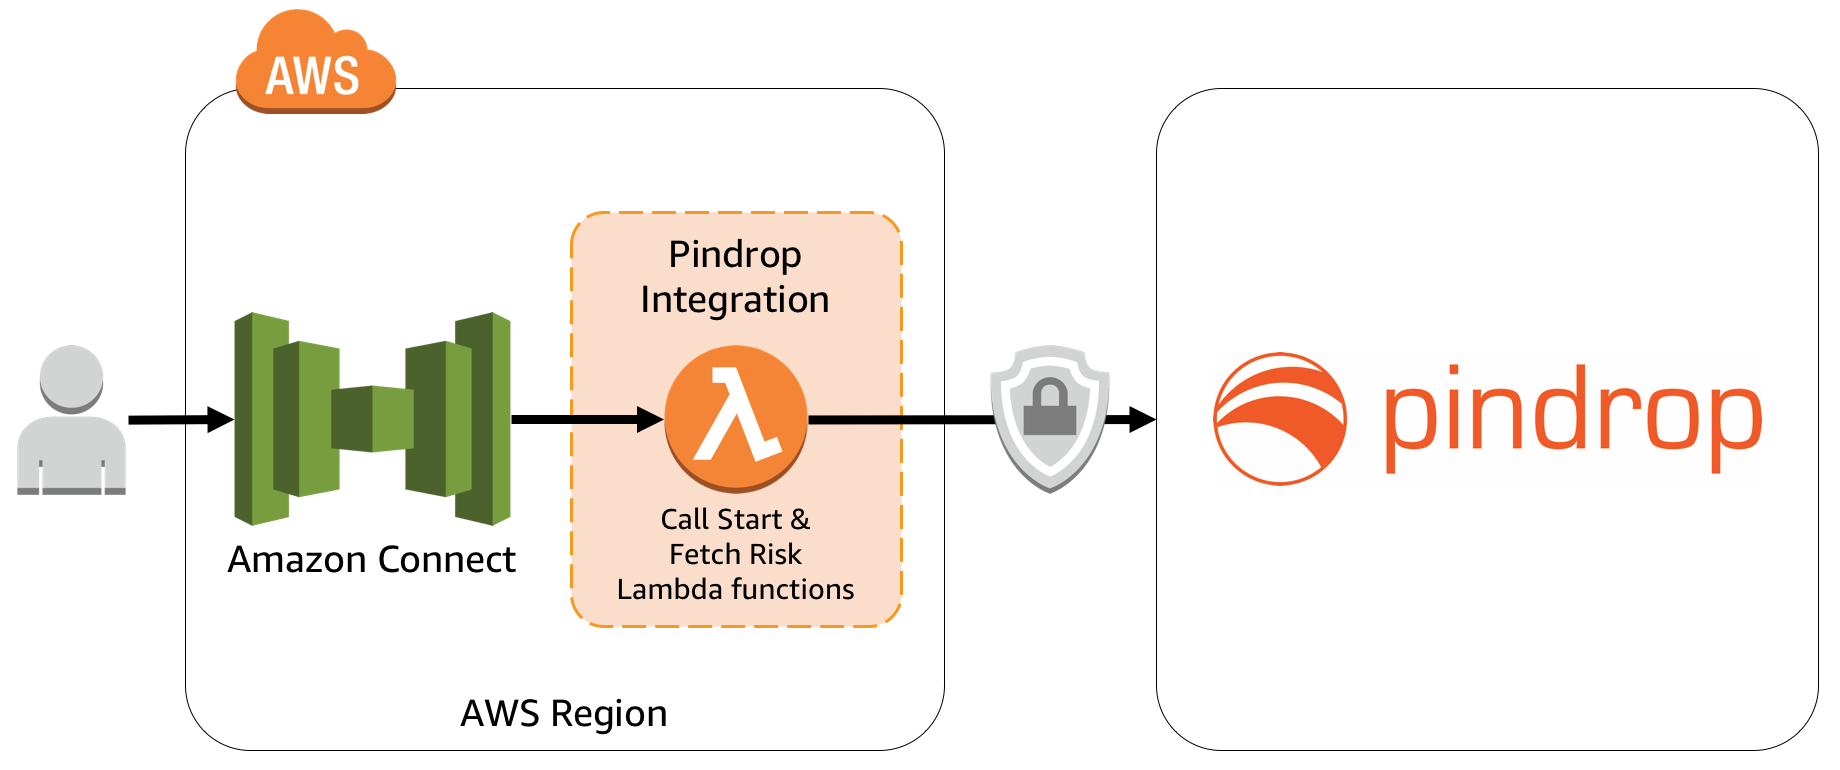 Architecture for Pindrop integration